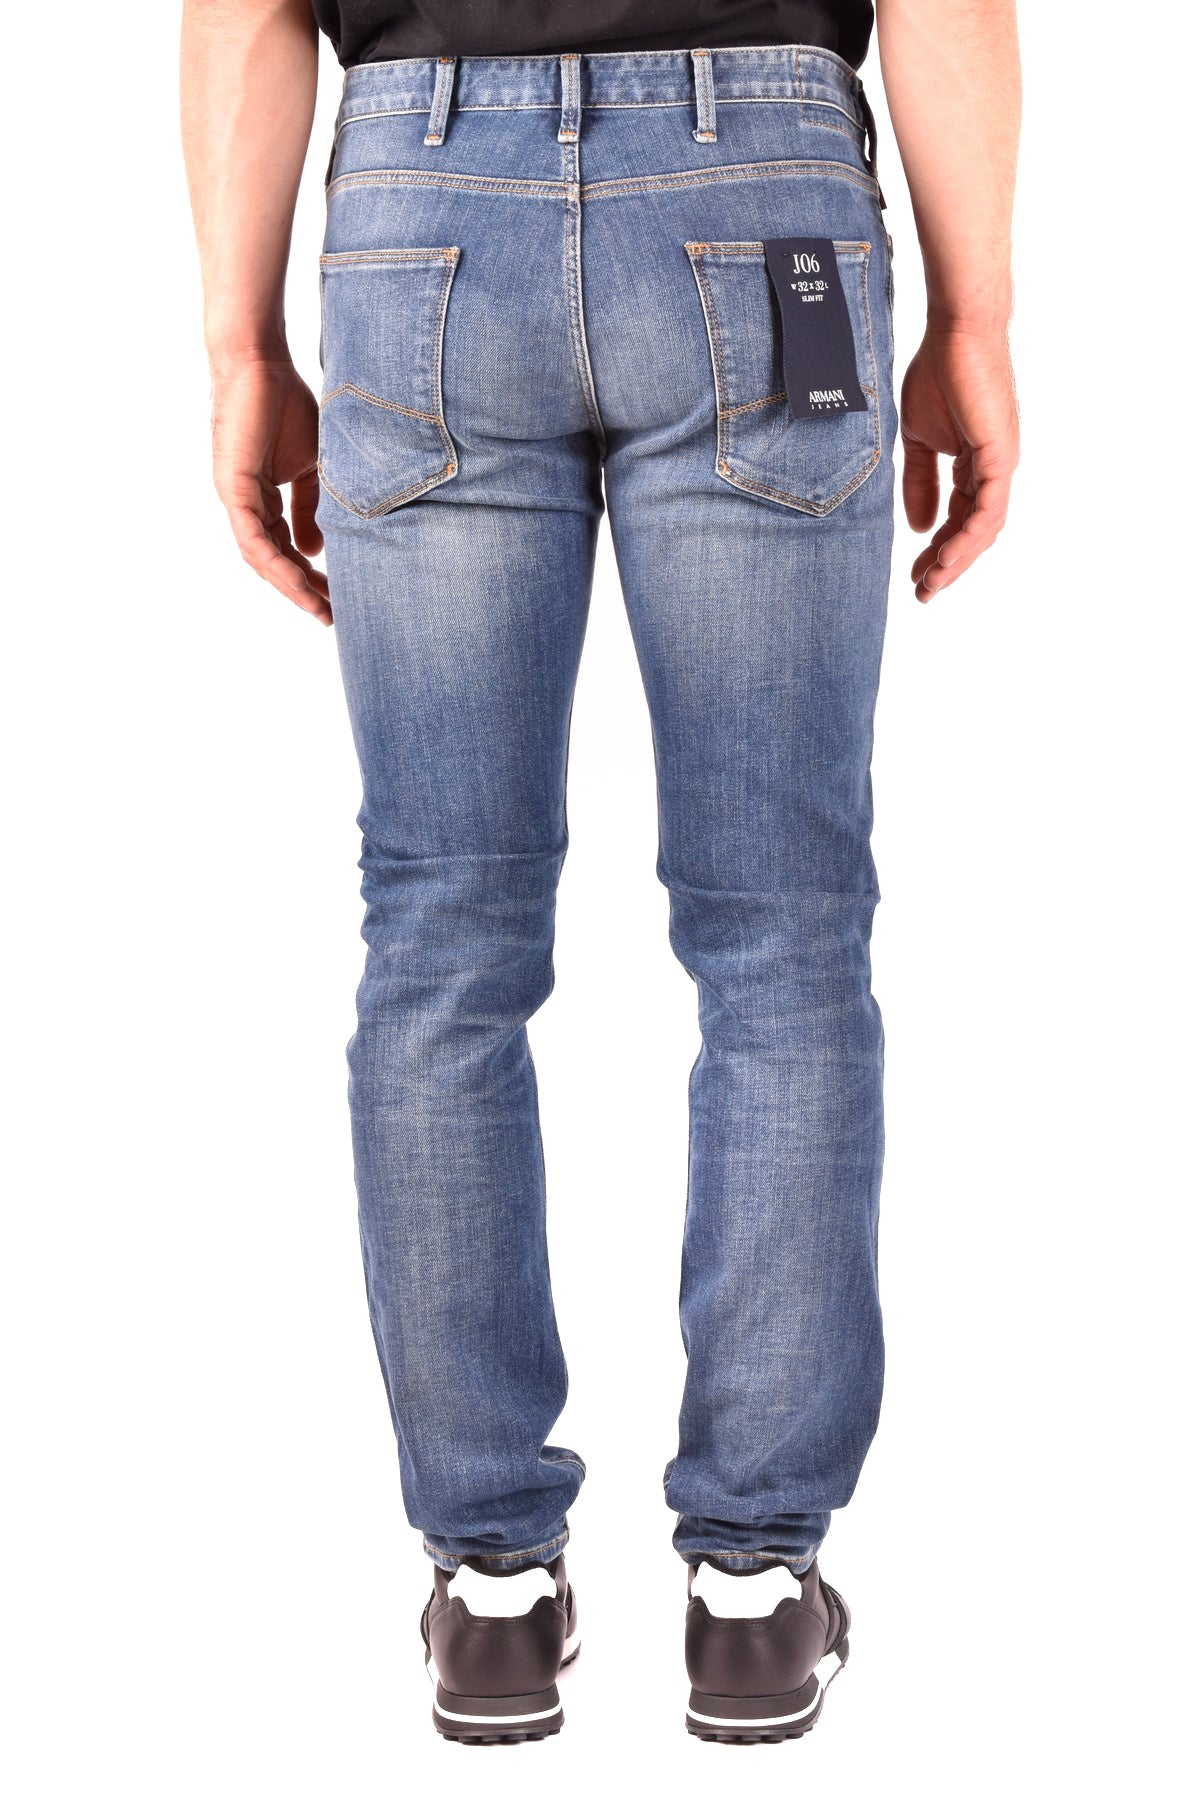 Jeans Armani Jeans-Men's Fashion - Men's Clothing - Jeans-Product Details Main Color: BlueClothing Type: JeansTerms: New With LabelSeason: Spring / SummerMade In: TunisiaGender: ManSize: UsComposition: Cotton 99%, Elastane 1%Year: 2020Manufacturer Part Number: 6Y6J06 6D04Z 0551-Keyomi-Sook